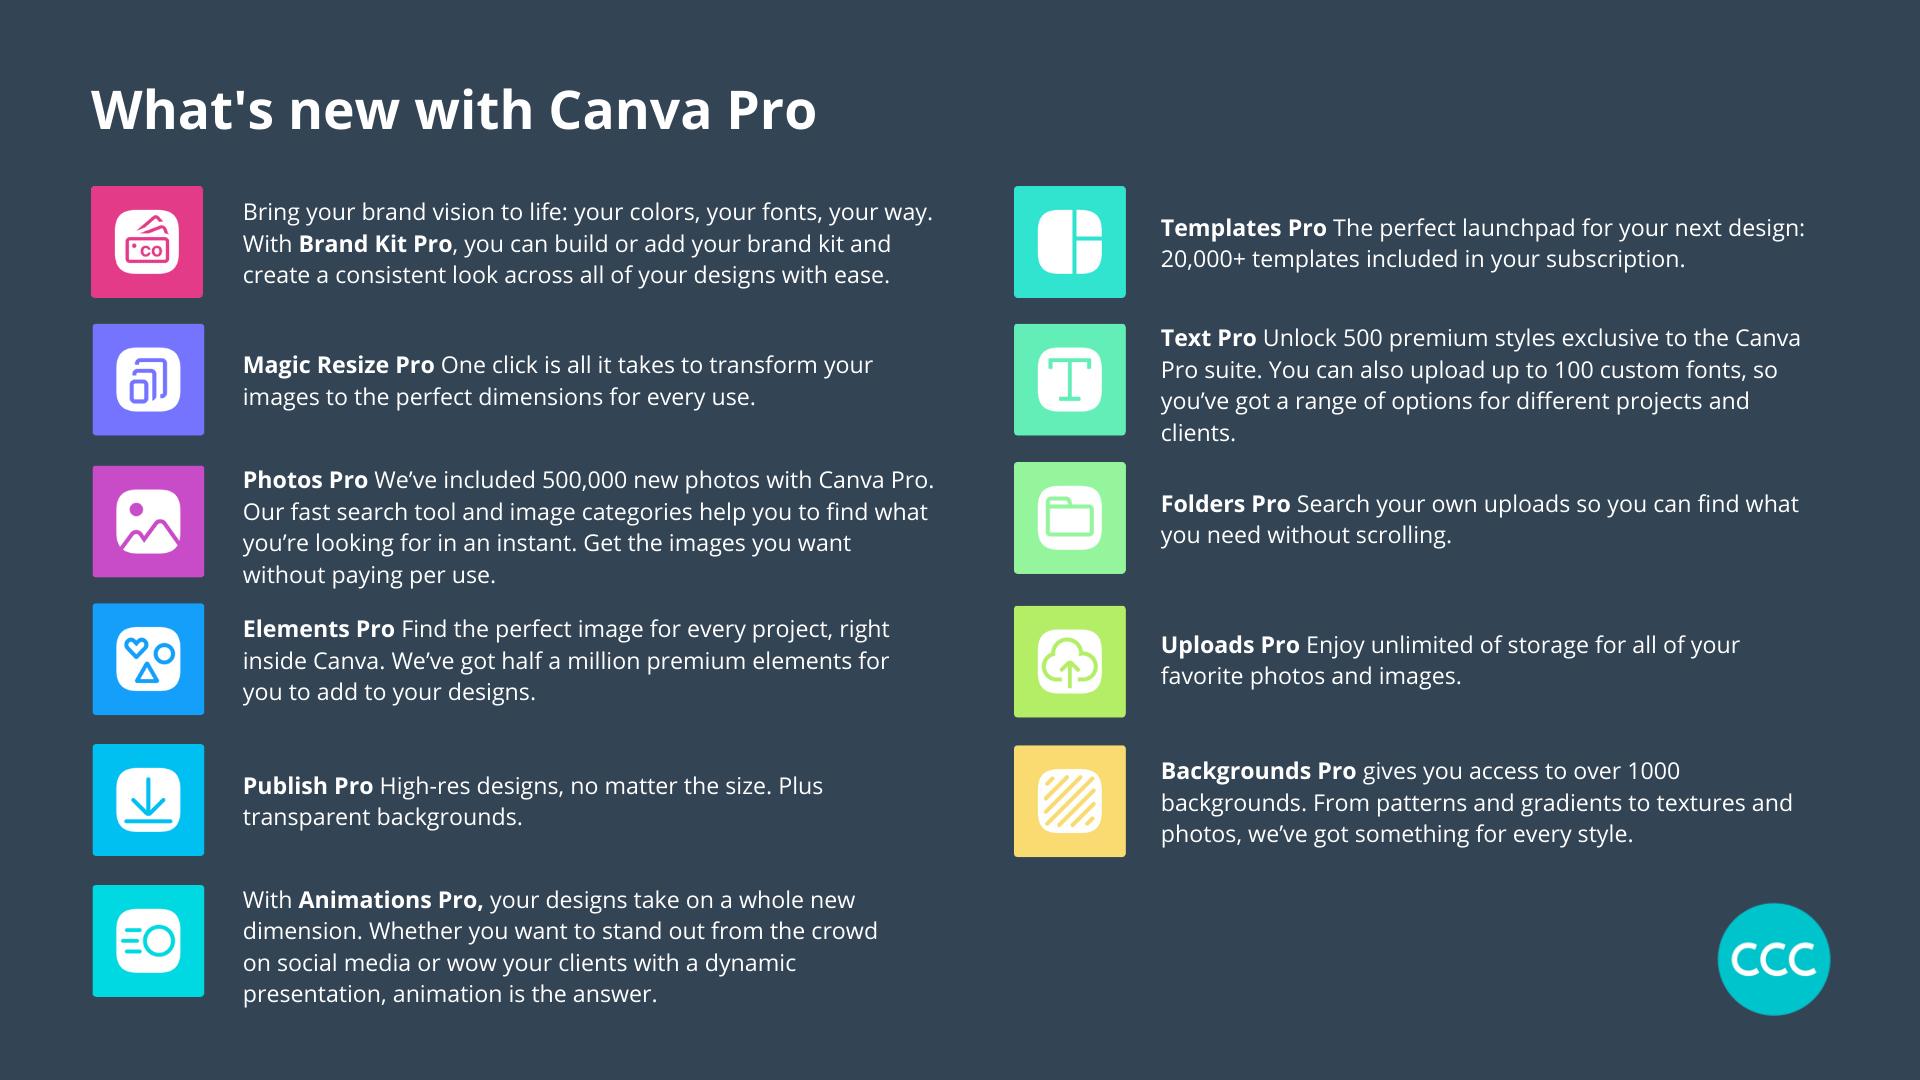 Canva Pro features